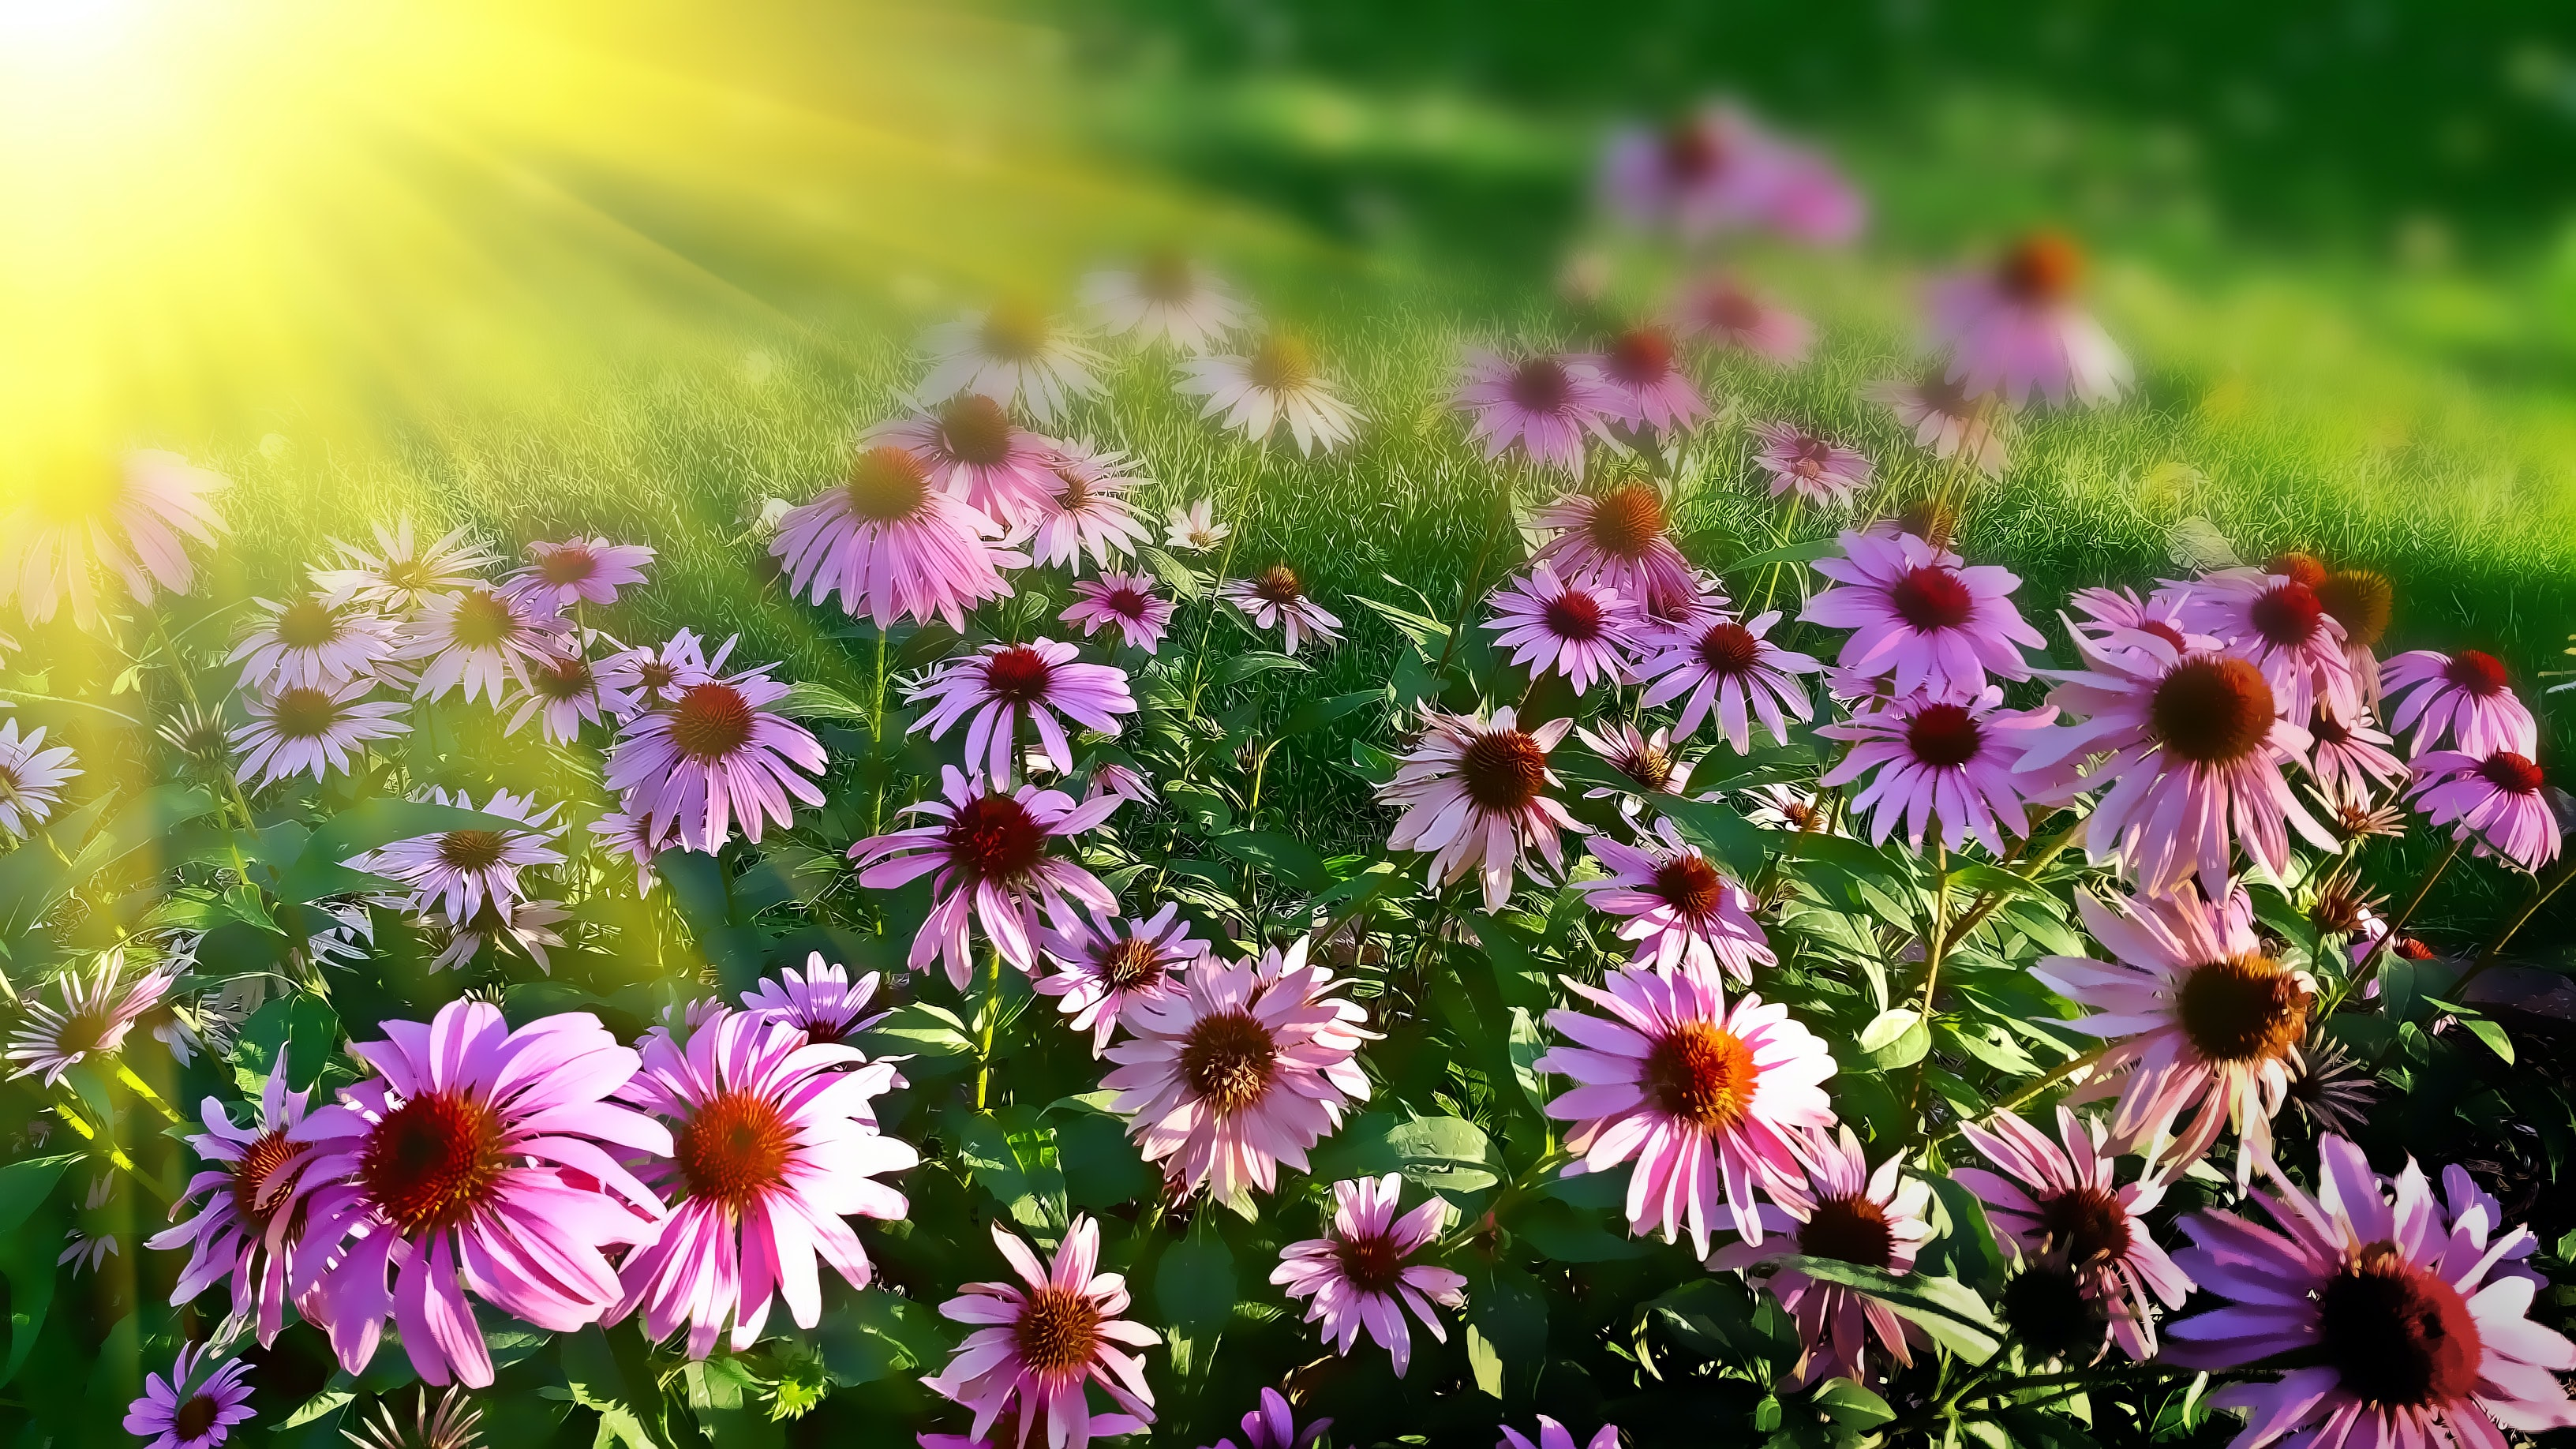 Bright sun shining on a patch of pink flowers